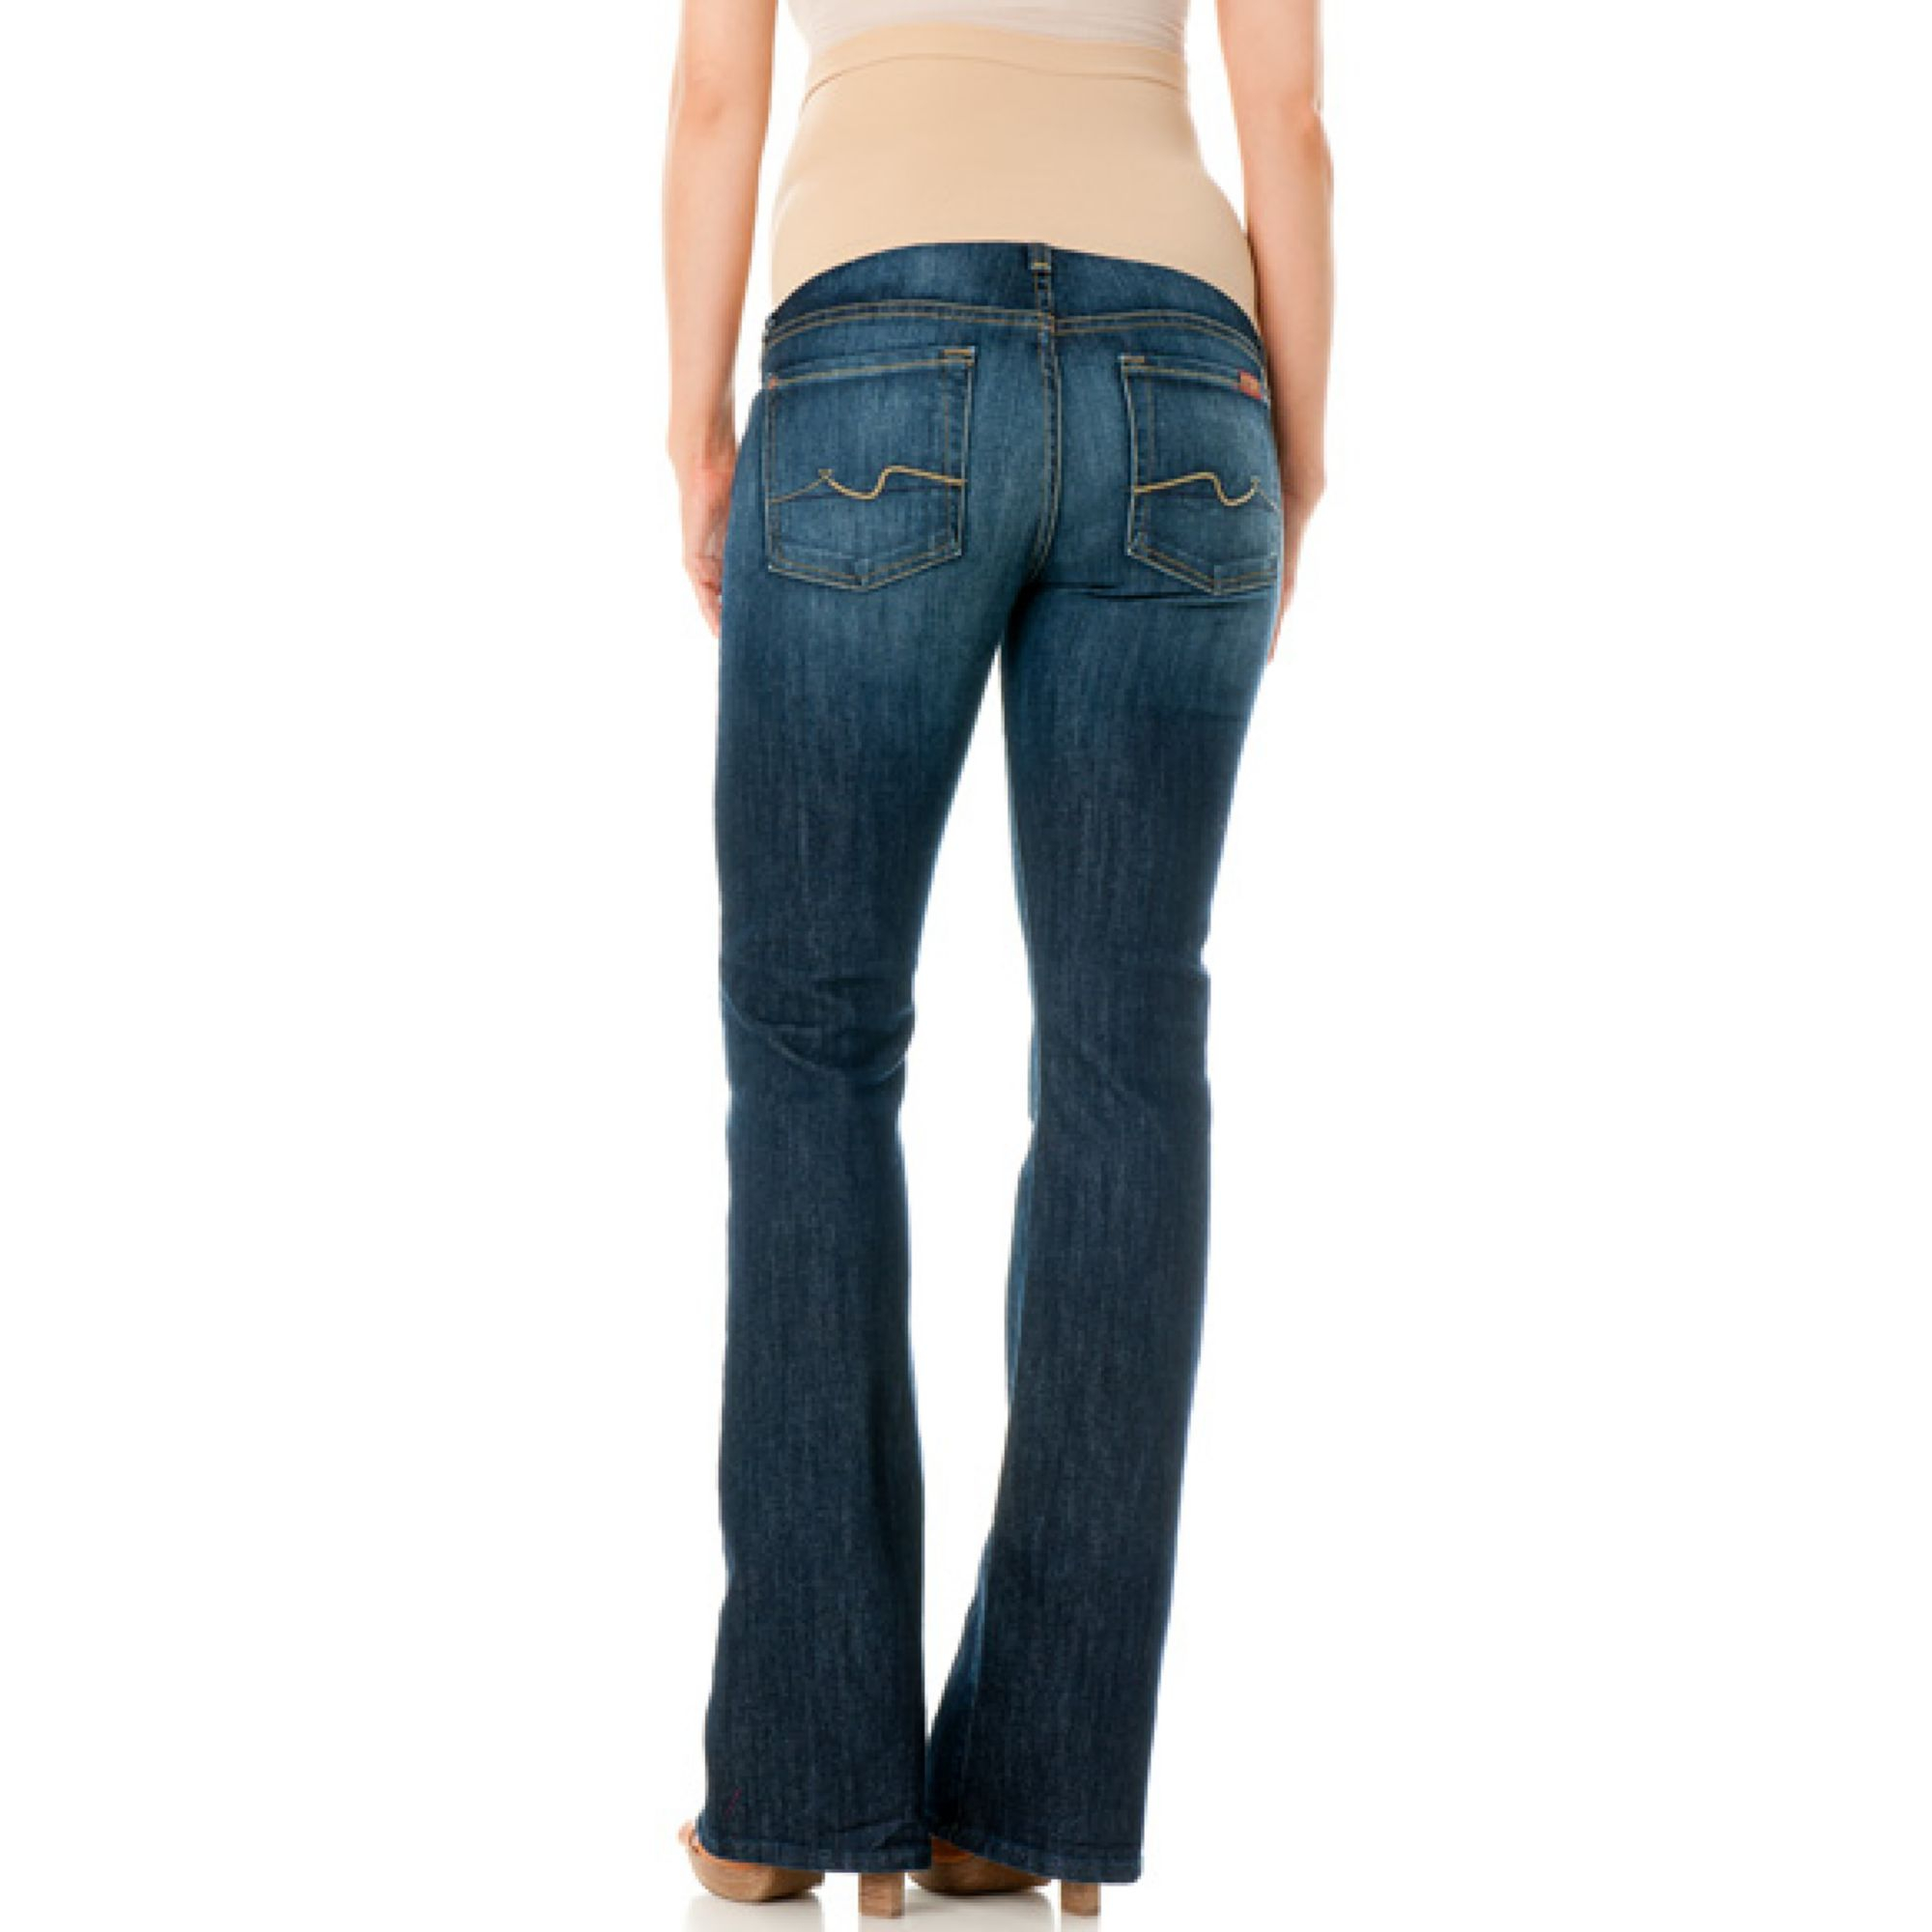 Shop Motherhood Maternity Petite Bootcut Maternity Jeans online at humorrmundiall.ga Crafted with a Secret Fit Belly® for coverage and support, these petite bootcut jeans by Indigo Blue for Motherhood Maternity are an absolute must for the mom-to-be/5(9).